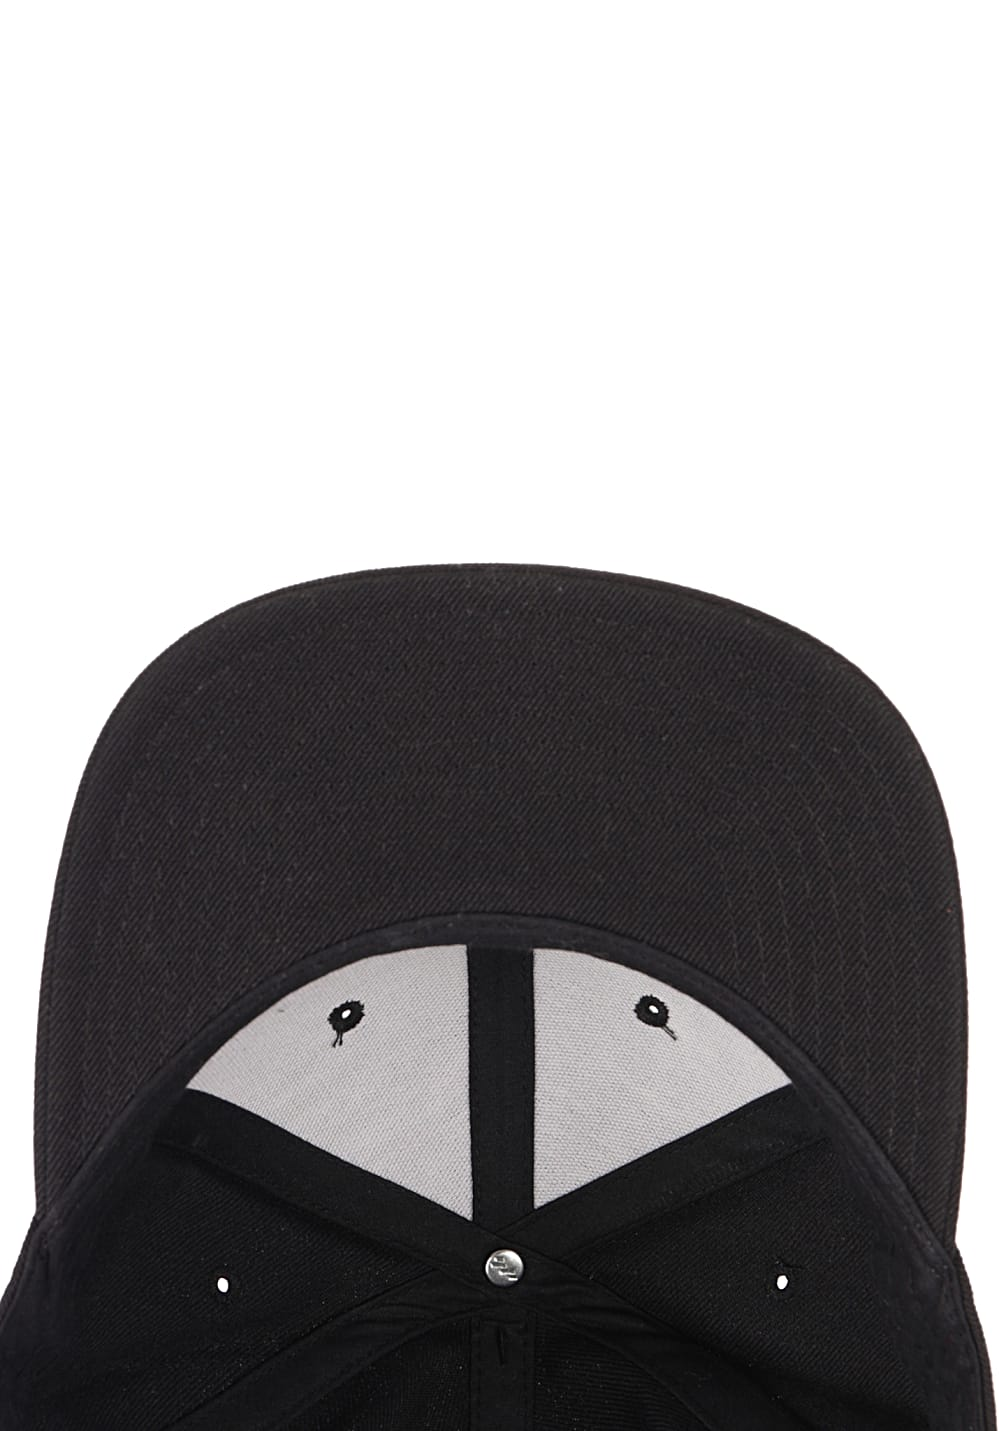 04fe7c8e766 Next. New. Rip Curl. Valley Badge - Snapback Cap. €24.95. incl. VAT plus  shipping costs. Size Chart